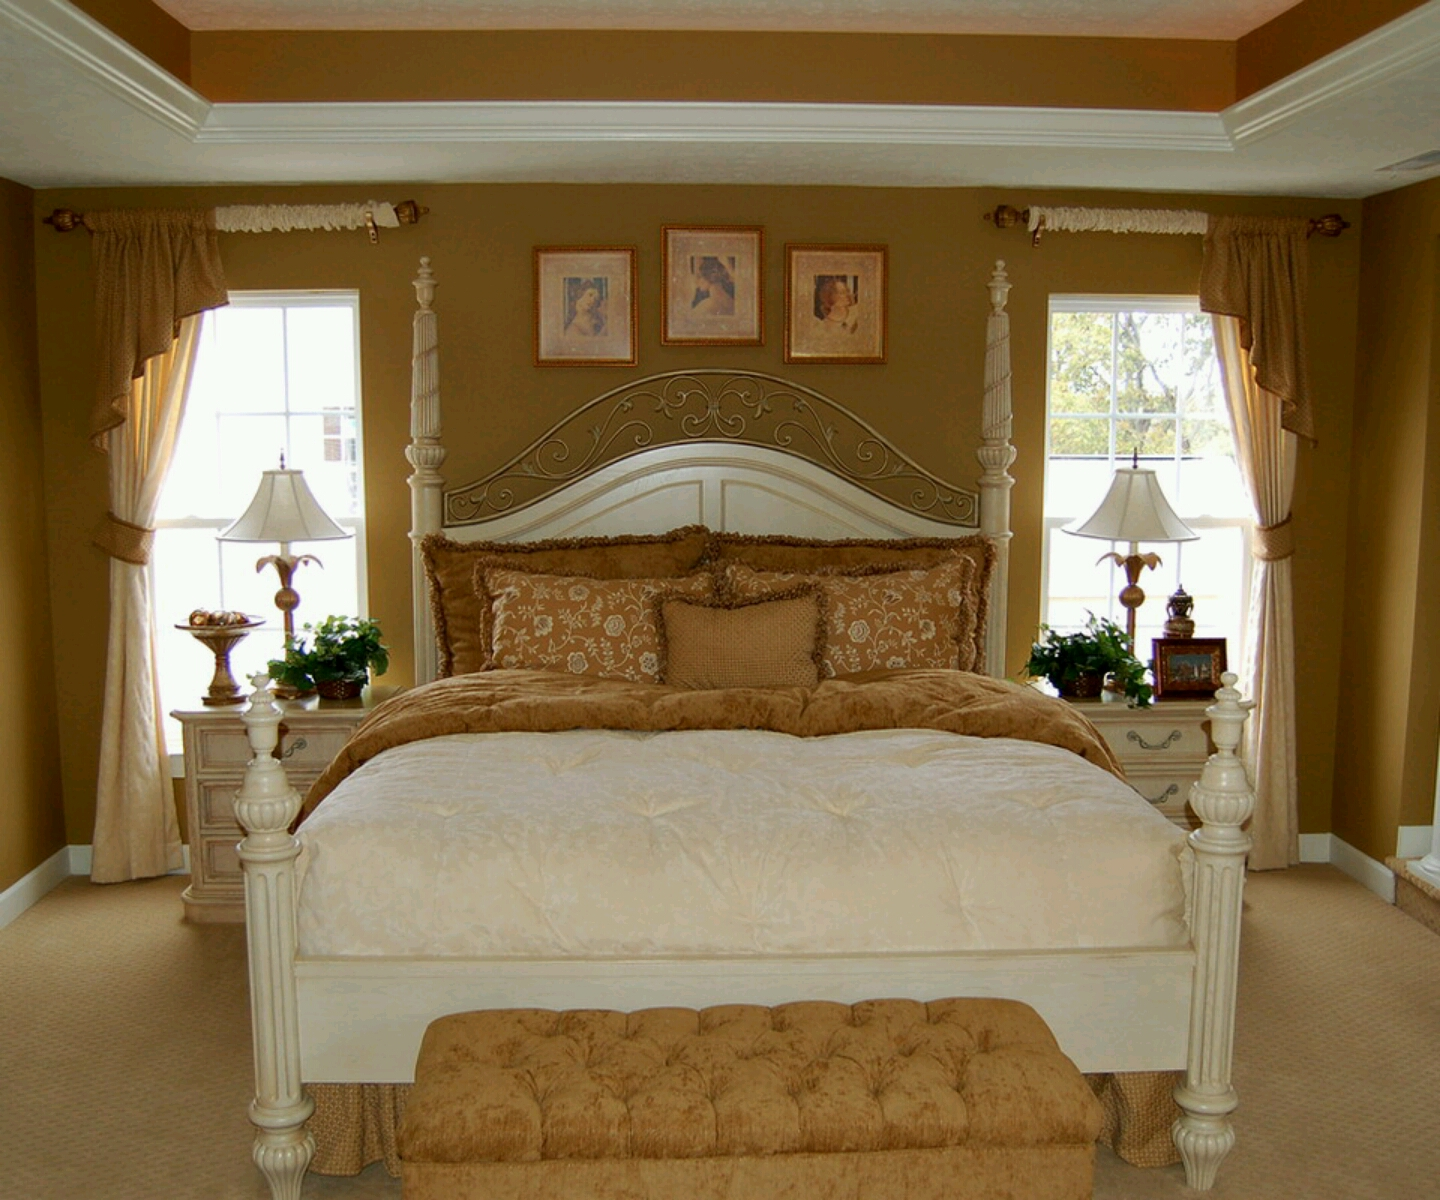 Inspiring 20 photographs for beautiful furniture designs home living now 54297 - Design of bed ...